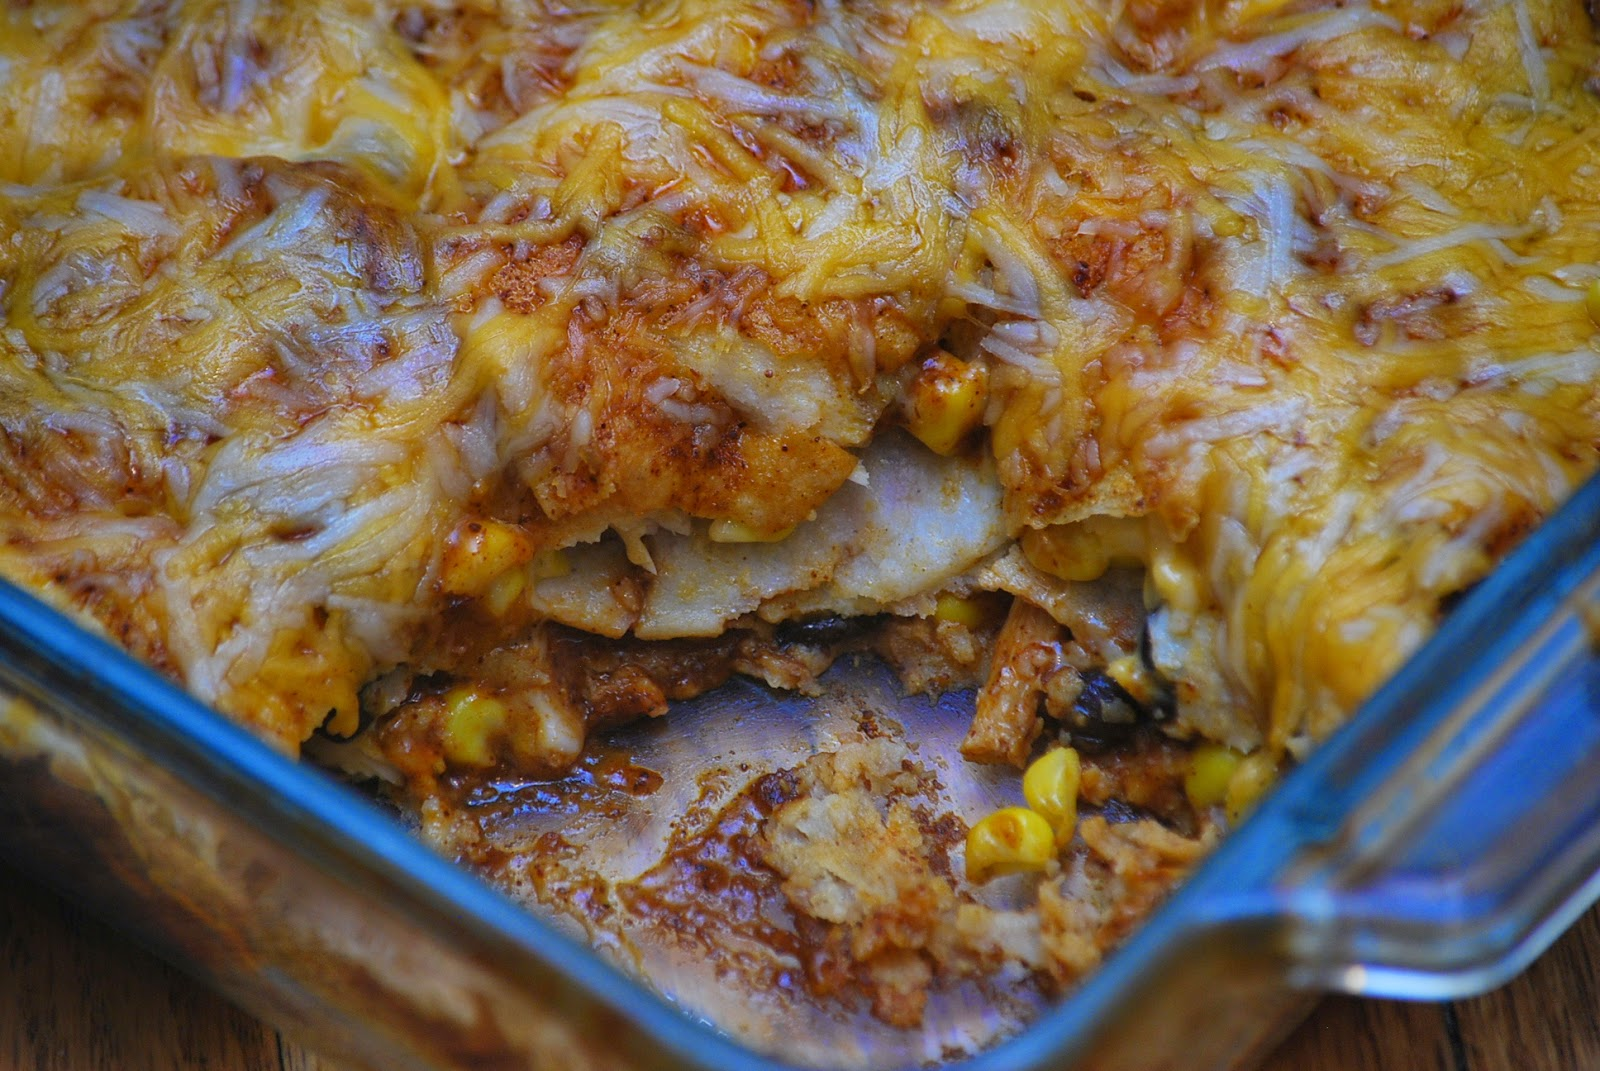 My story in recipes: Chicken Enchilada Casserole